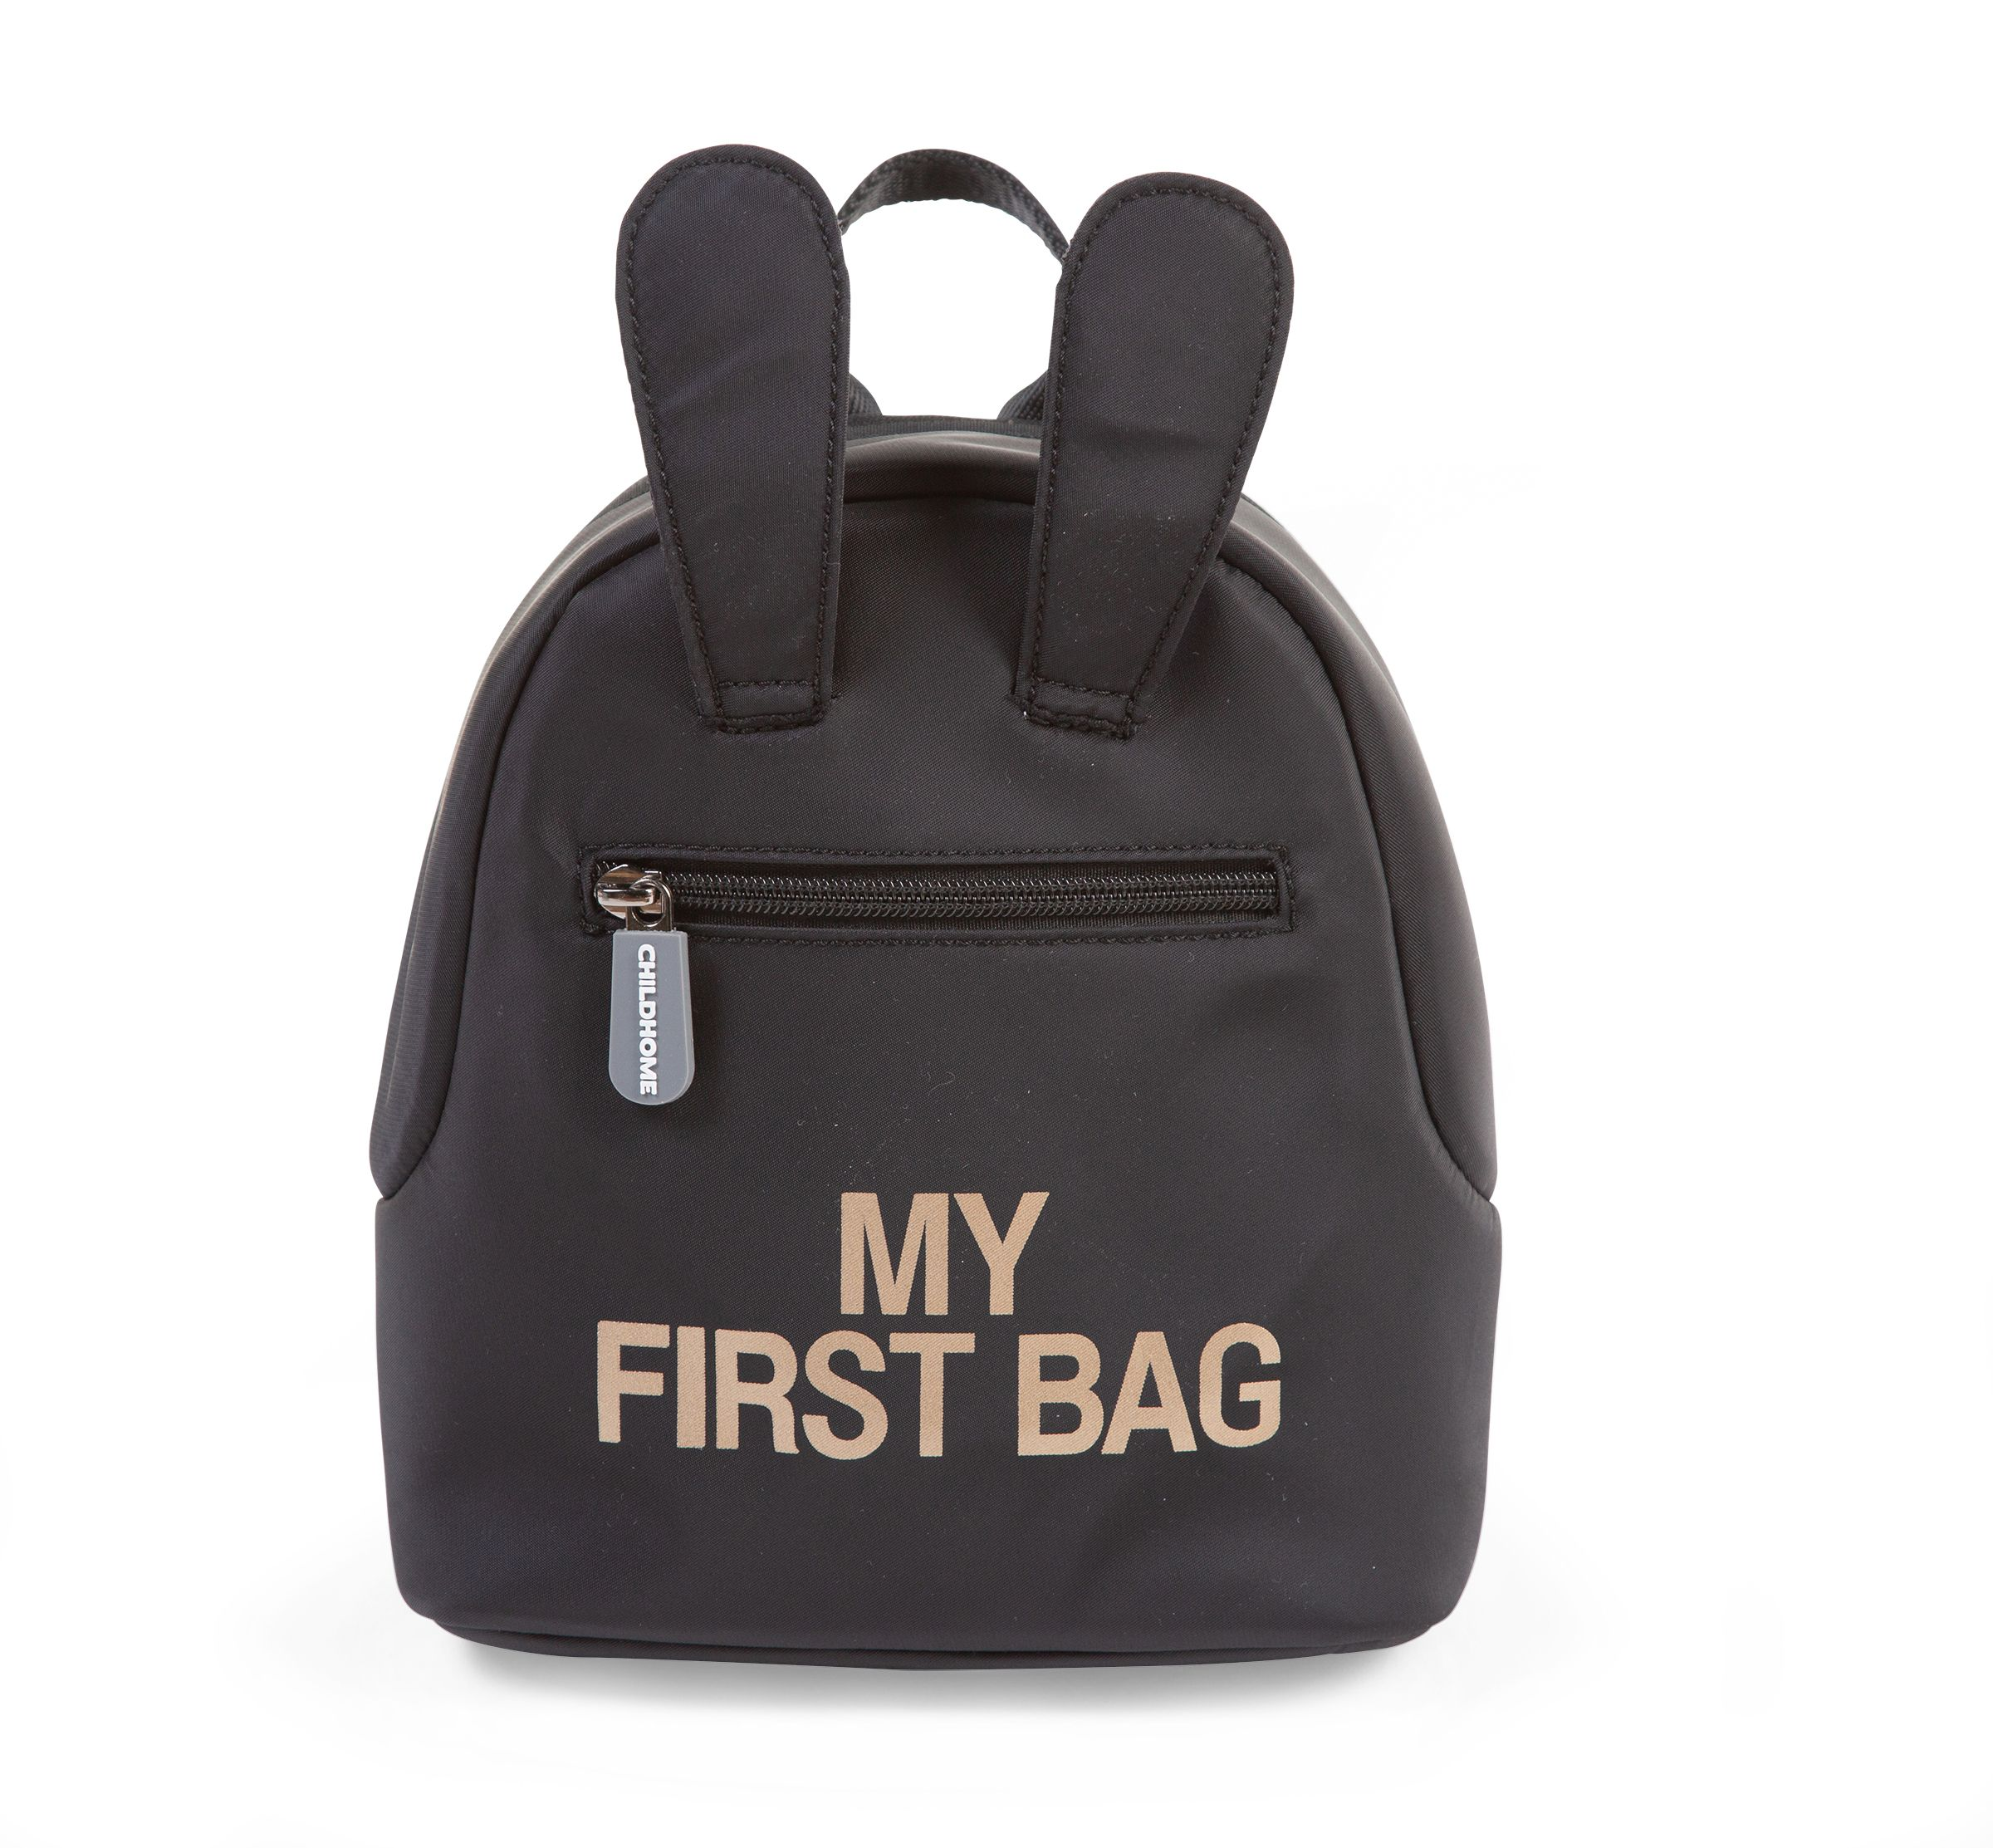 My First Bag Children's Backpack - Black - MyLullaby